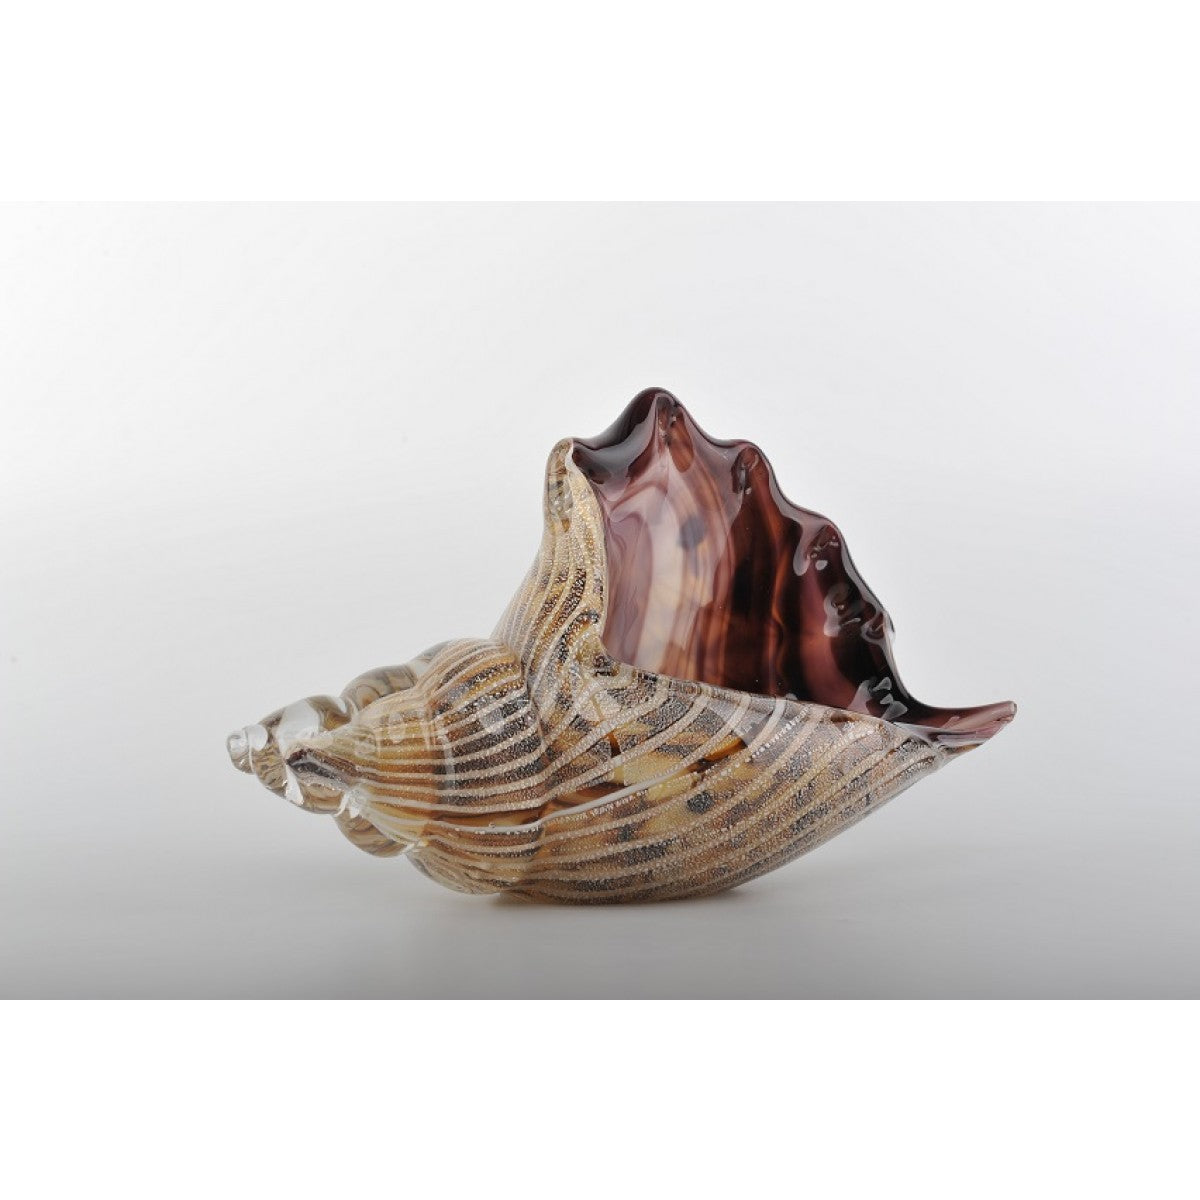 Glass Decoration of Seashell